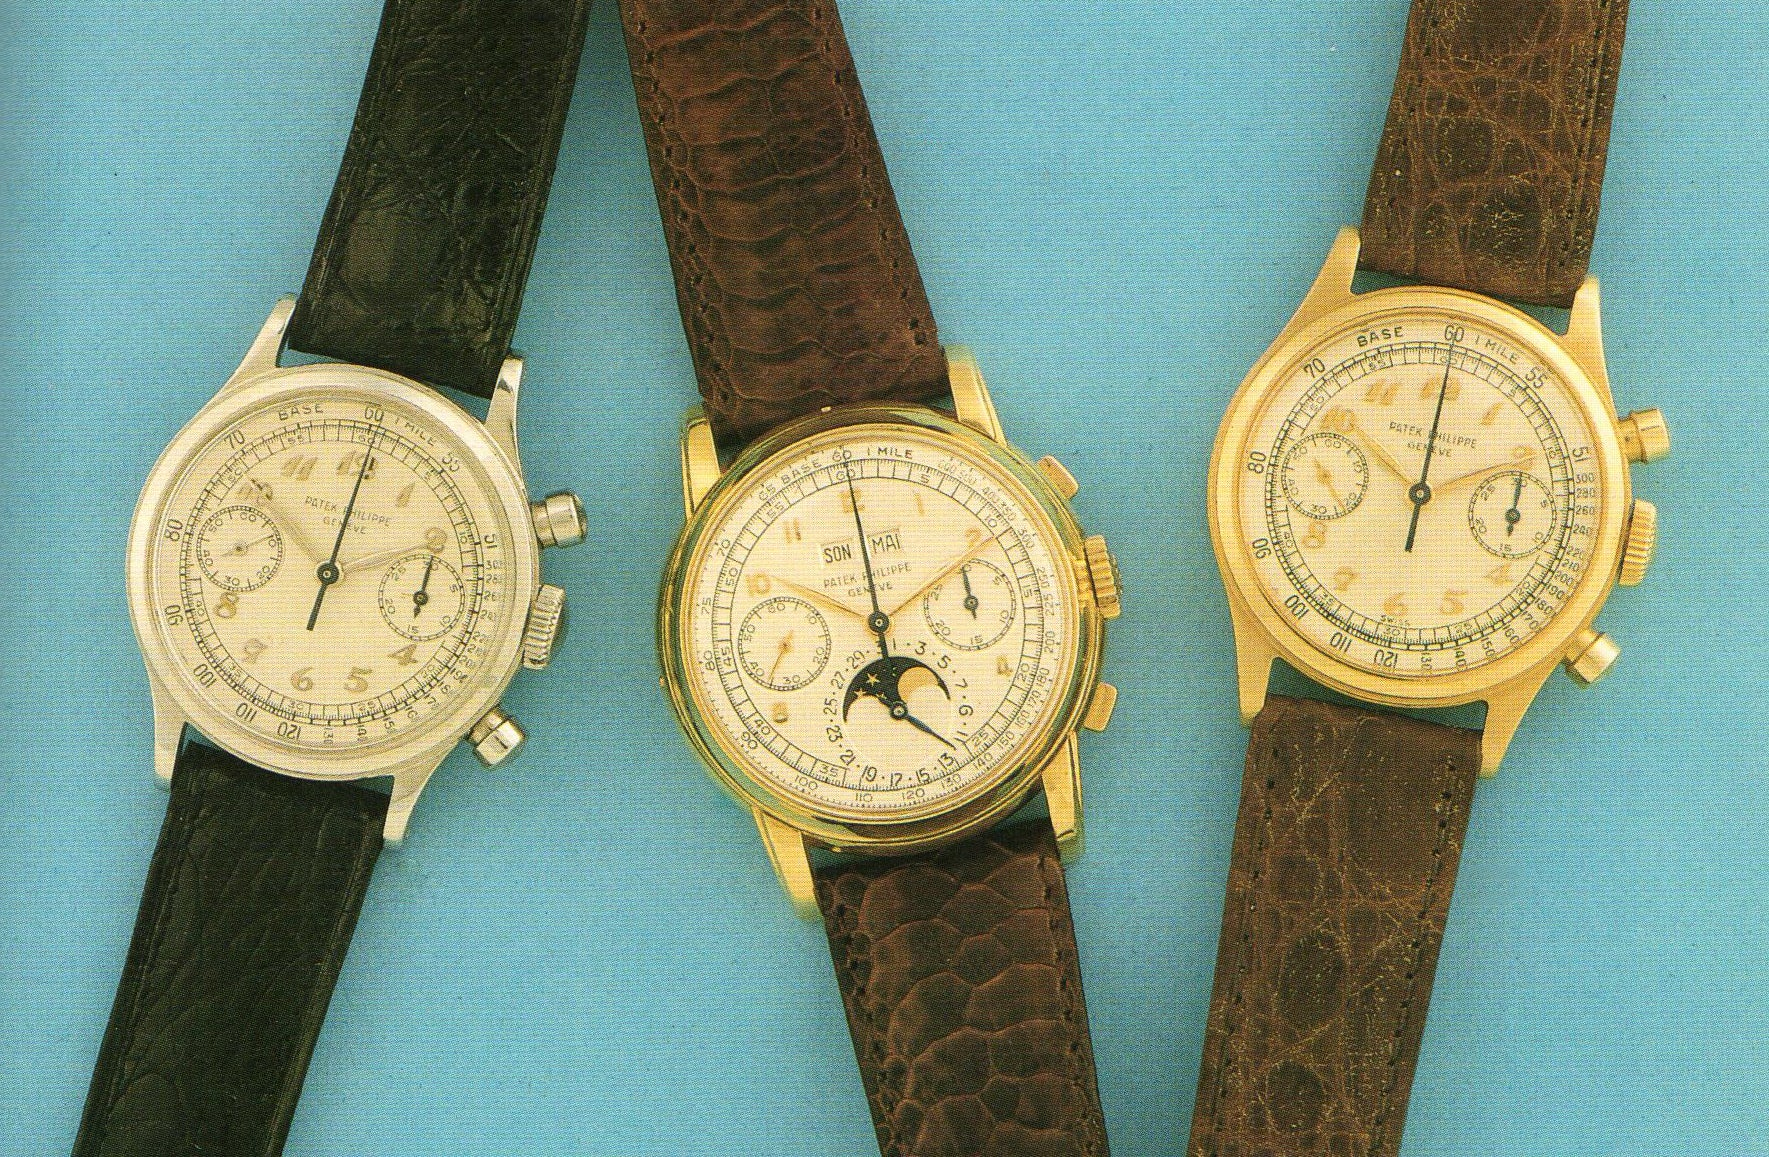 Three Patek Philippe chronographs on a blue background in The Early Days of Vintage Wristwatch Collecting for A Collected Man London